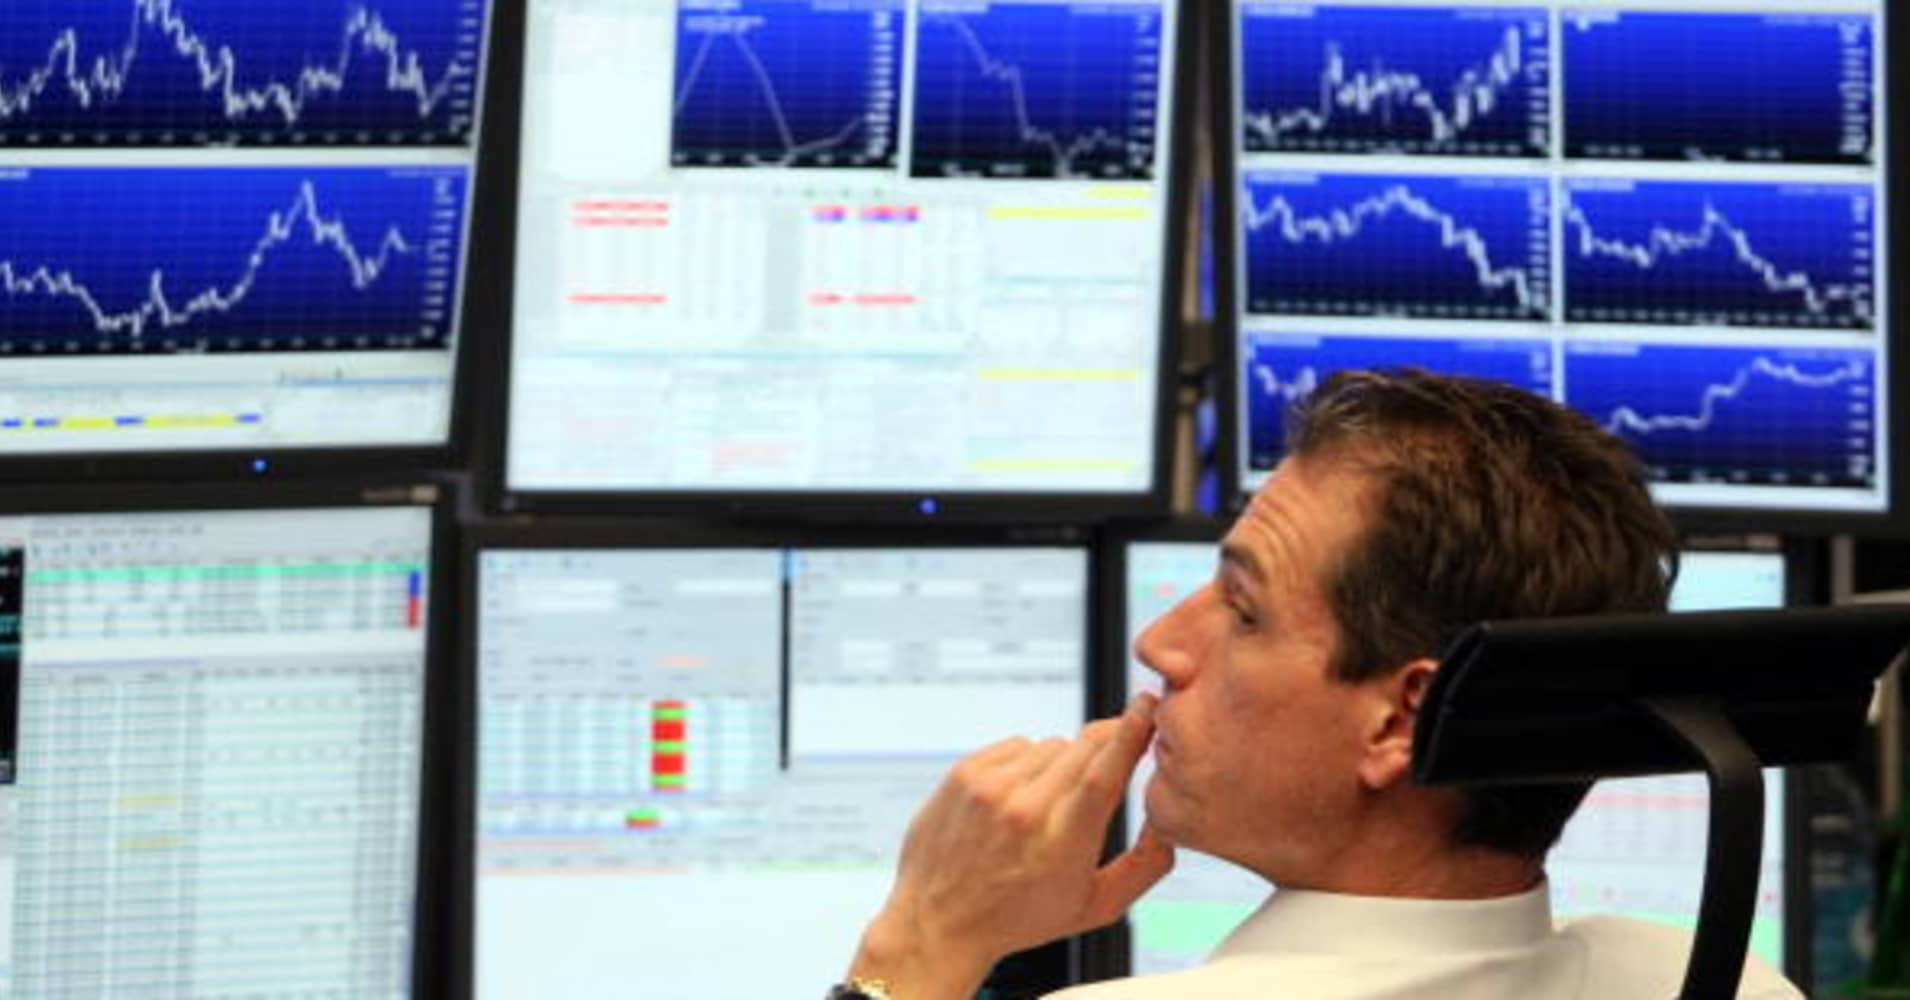 European markets bounce back after heavy losses; miners gain